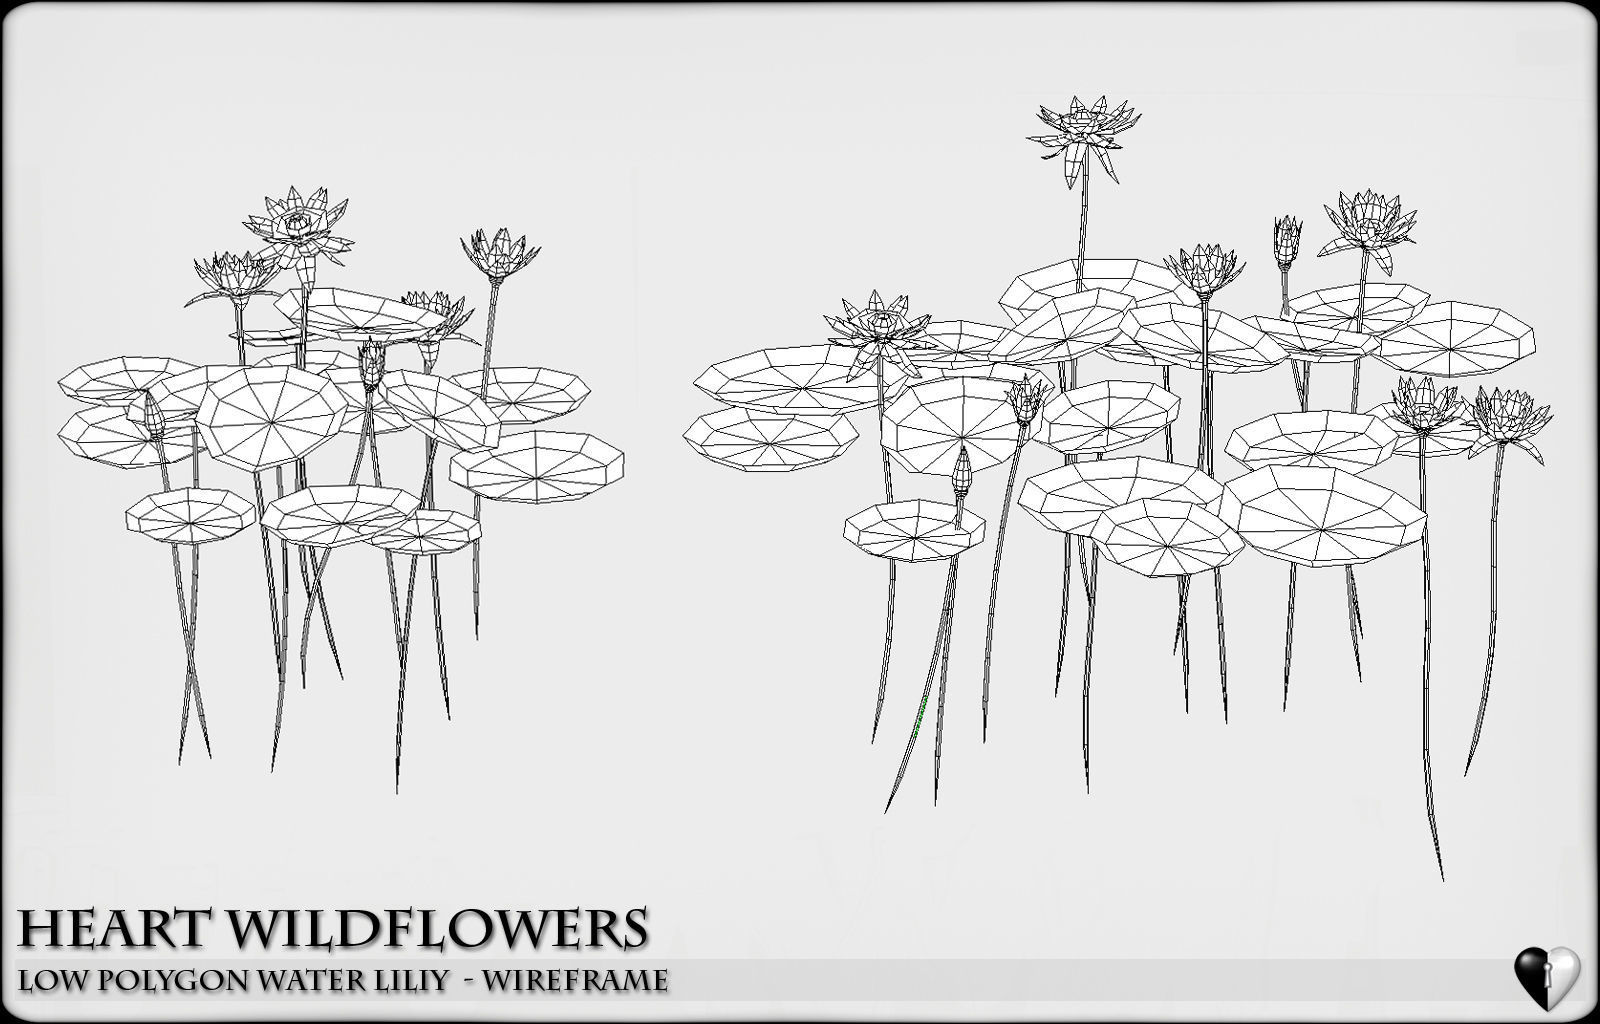 hight resolution of low polygon 3d water lilies for games and visualisation low poly 3d model